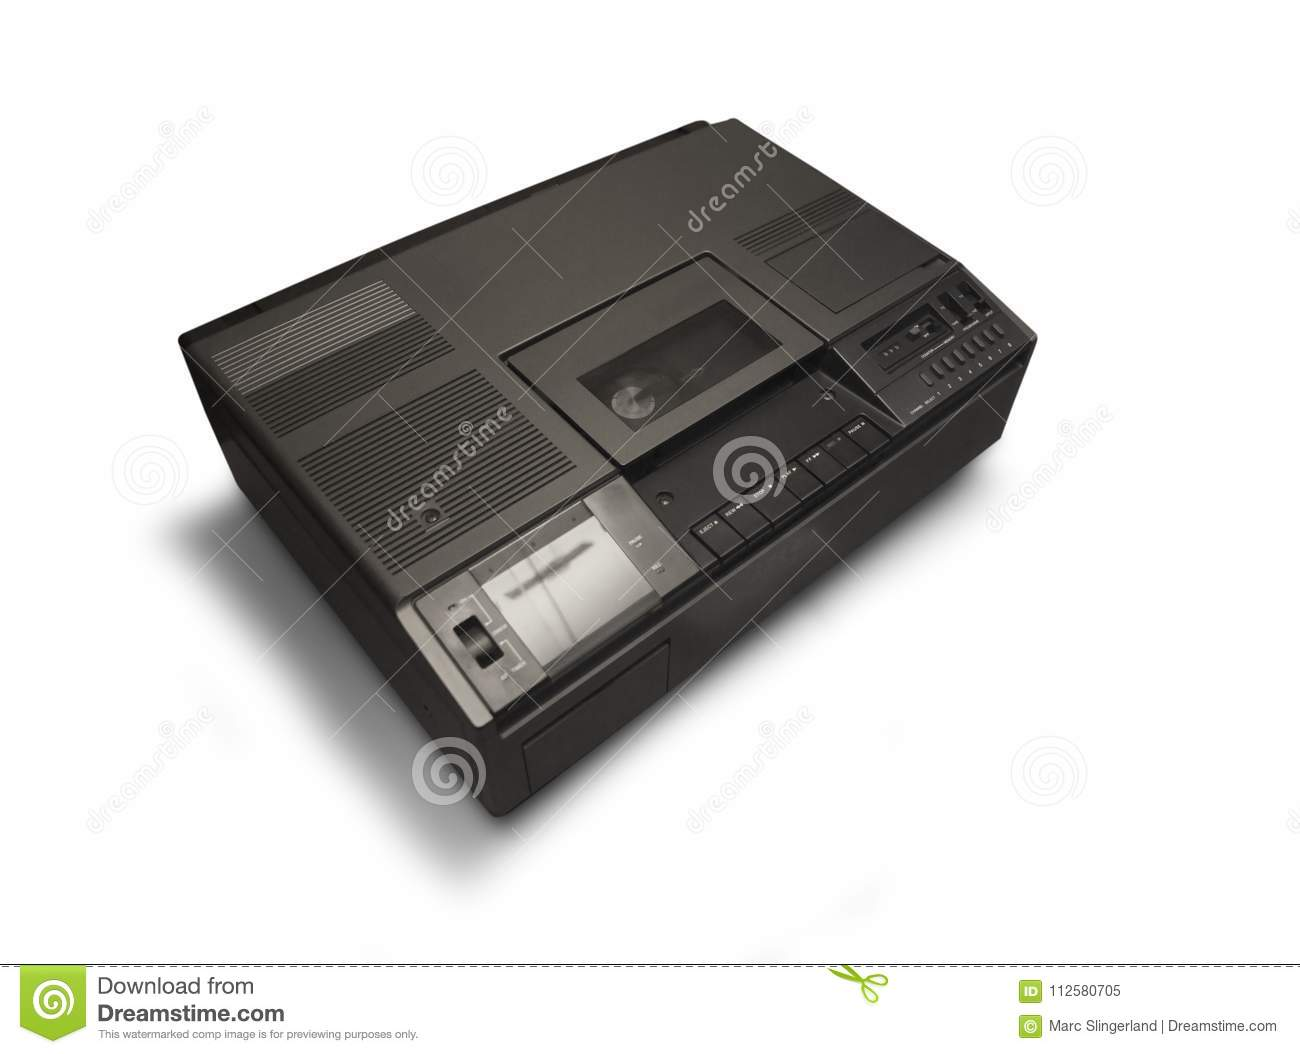 Betamax video recorder from the seventie